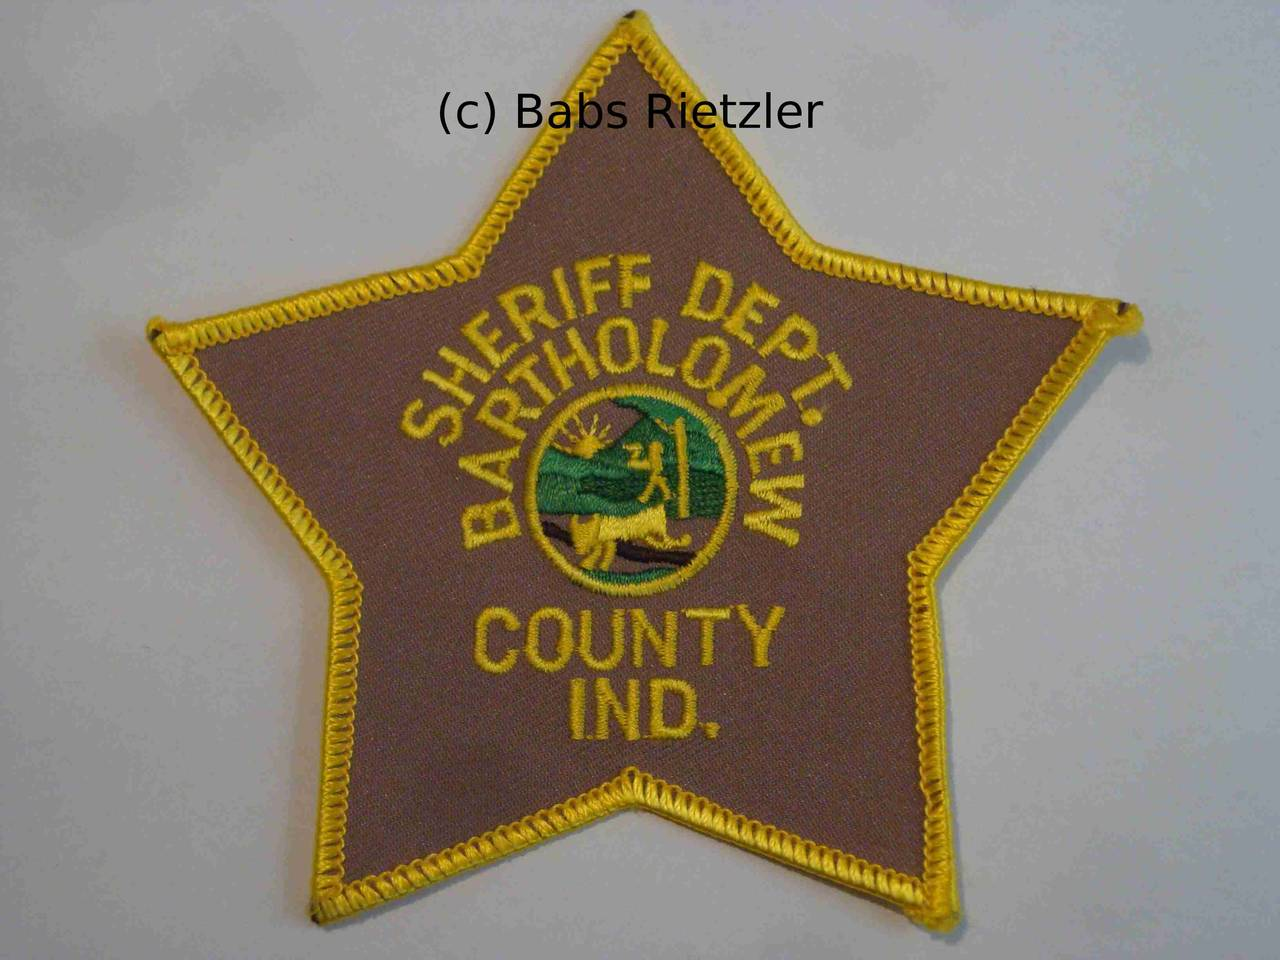 bartholomew county We would like to show you a description here but the site won't allow us.